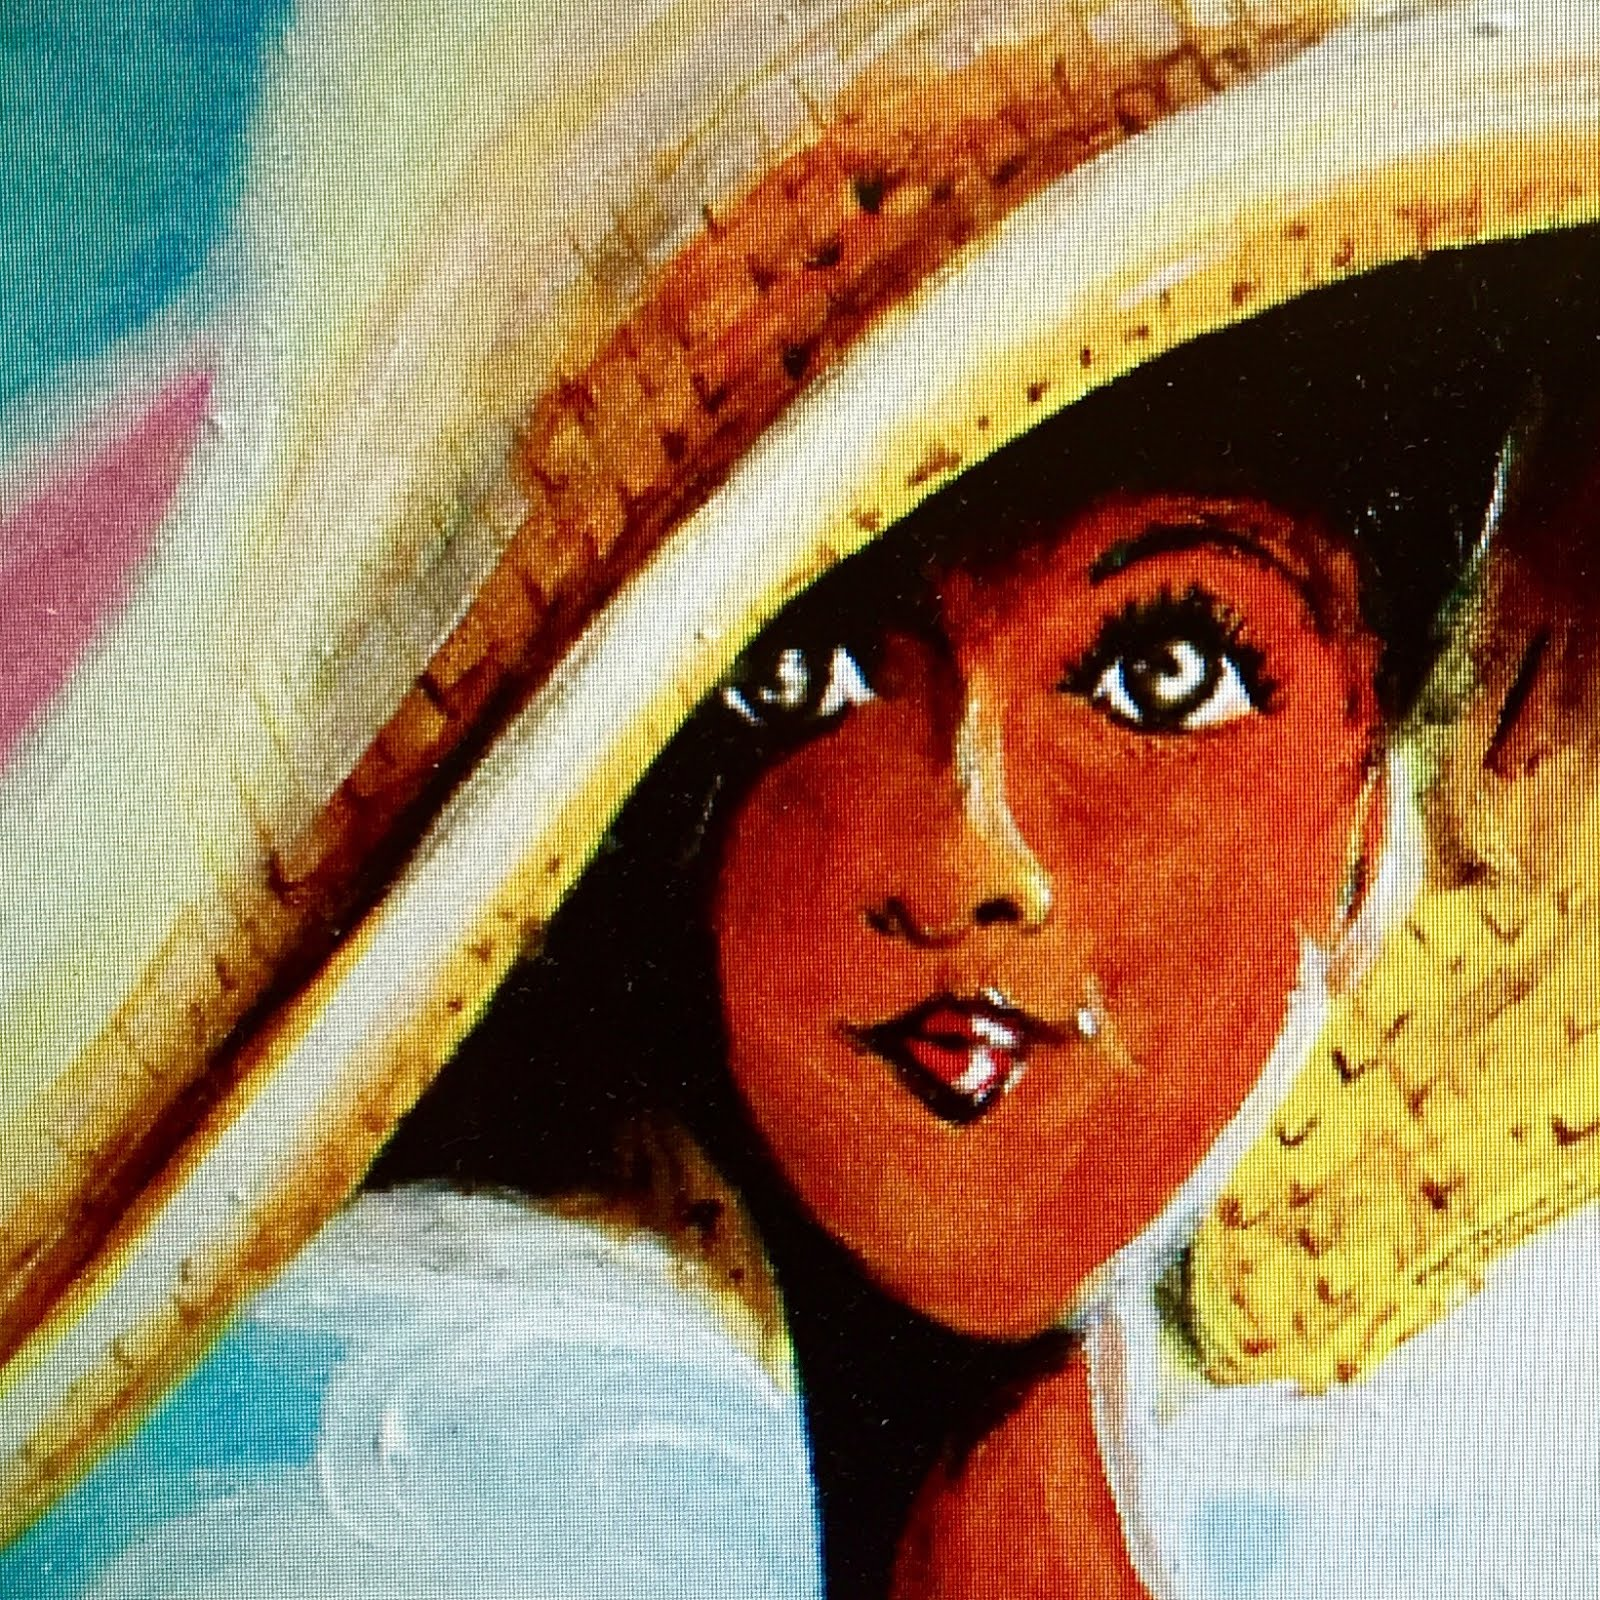 The Southern Straw Hat